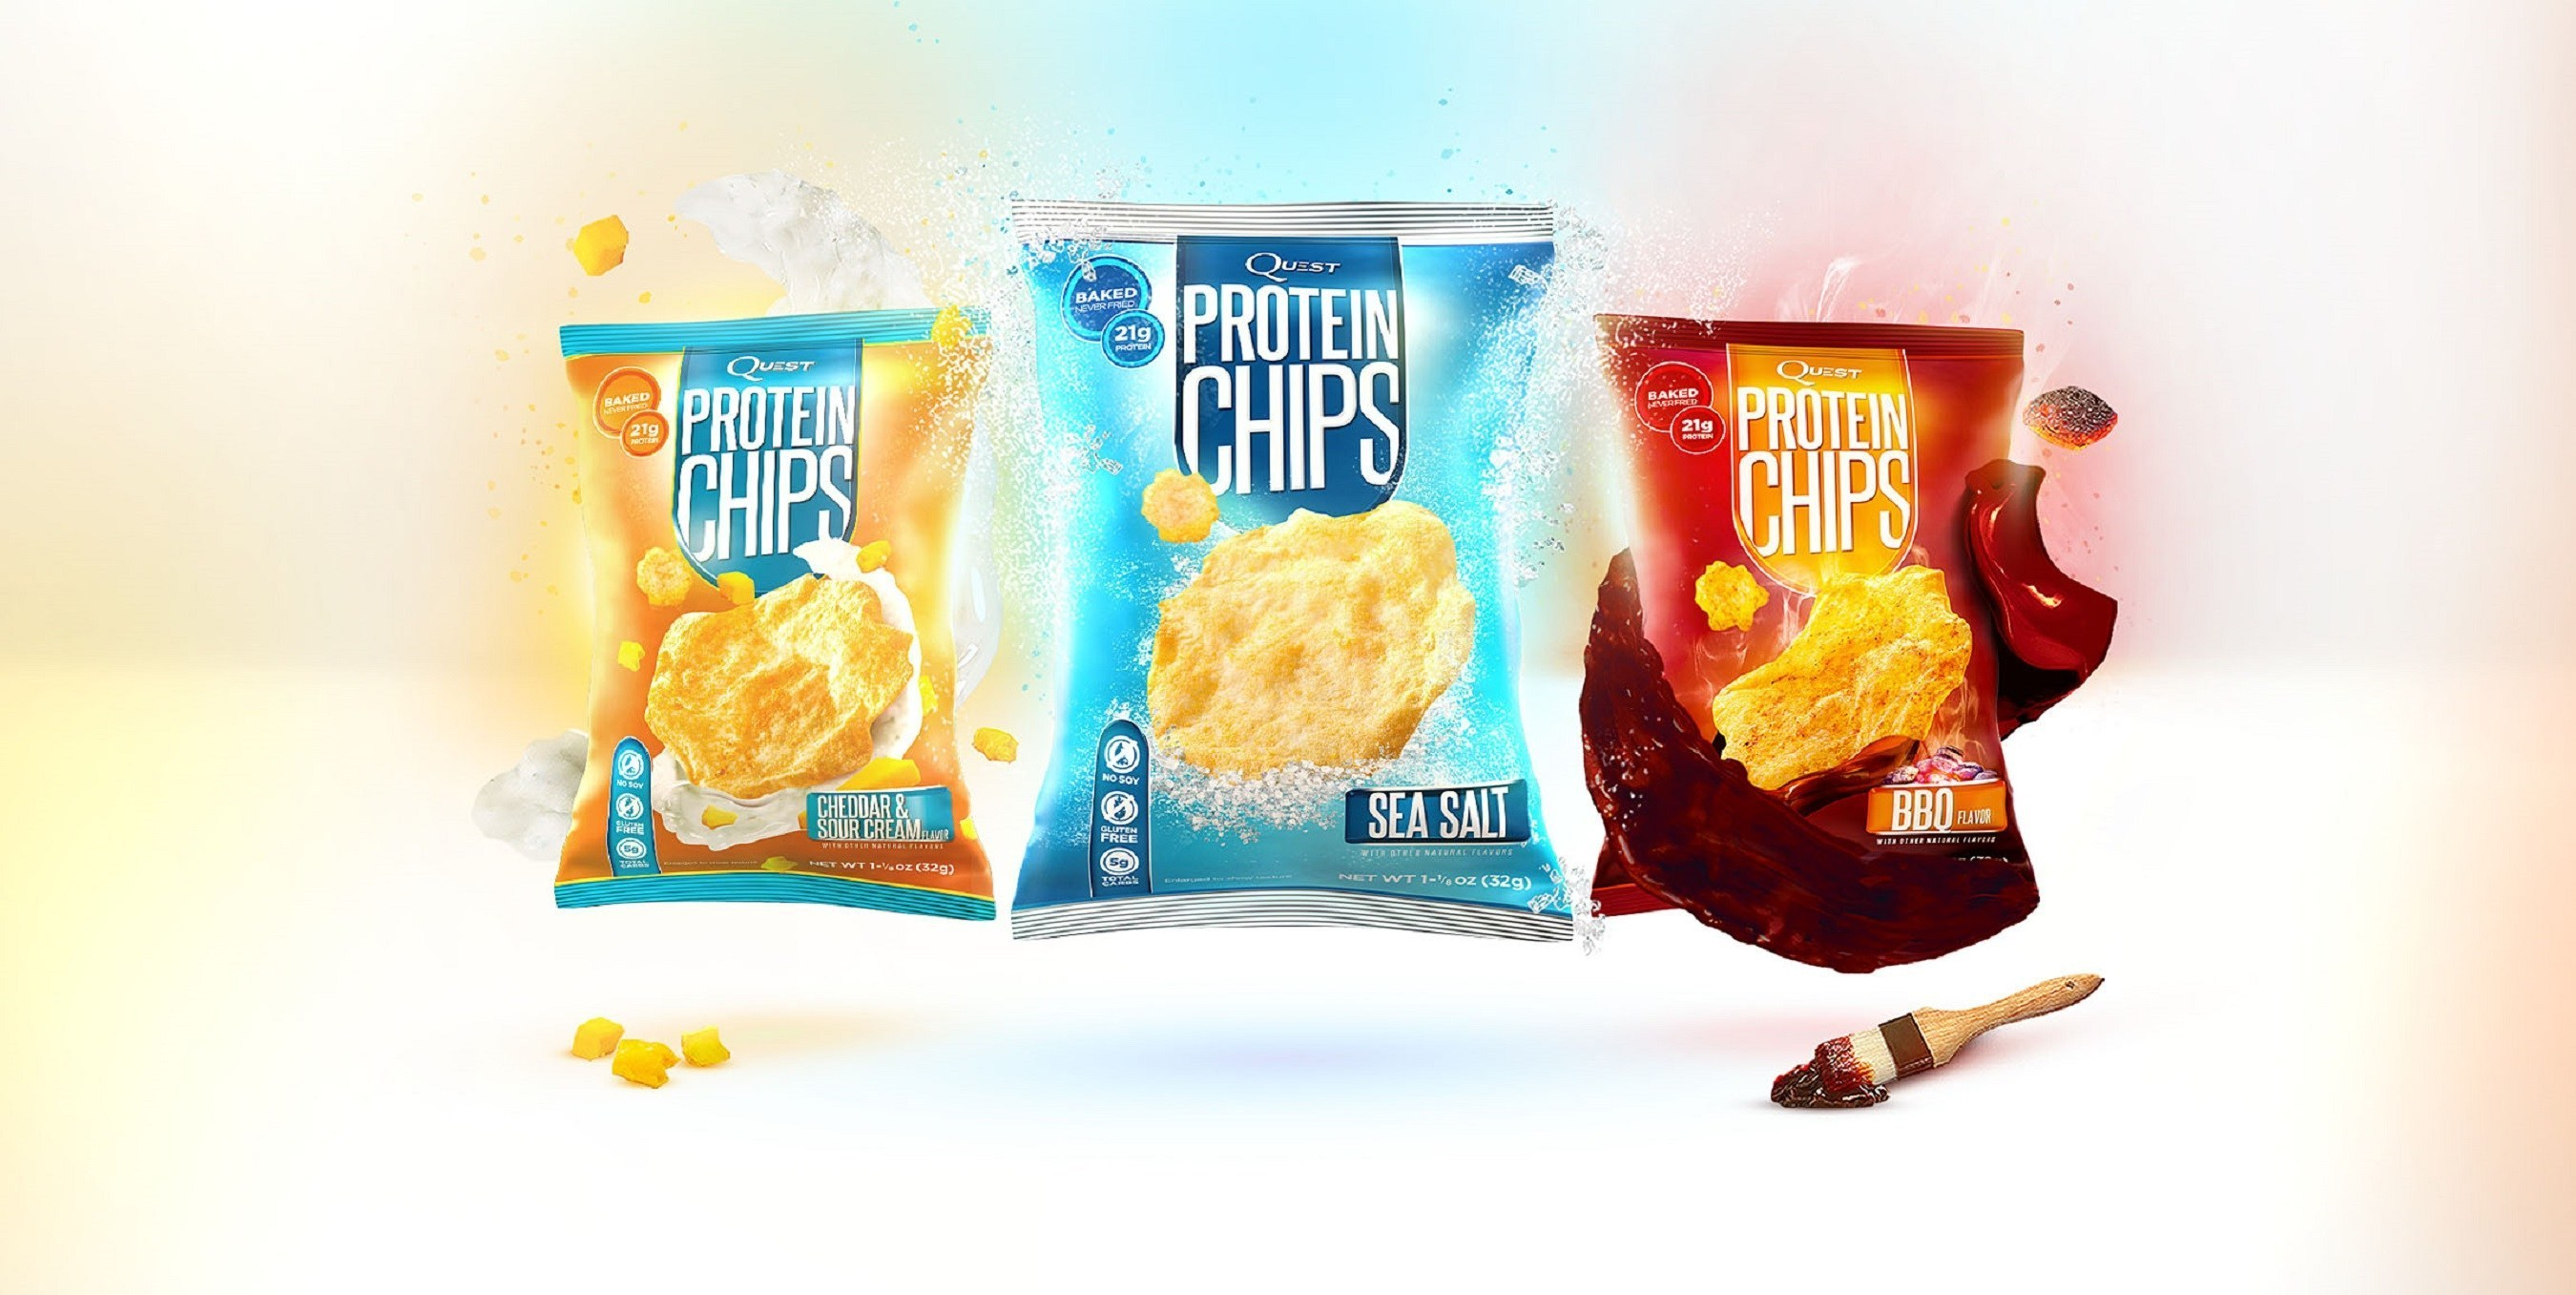 A HEALTHY Potato Chip? Quest Nutrition Launches Quest Protein Chips!